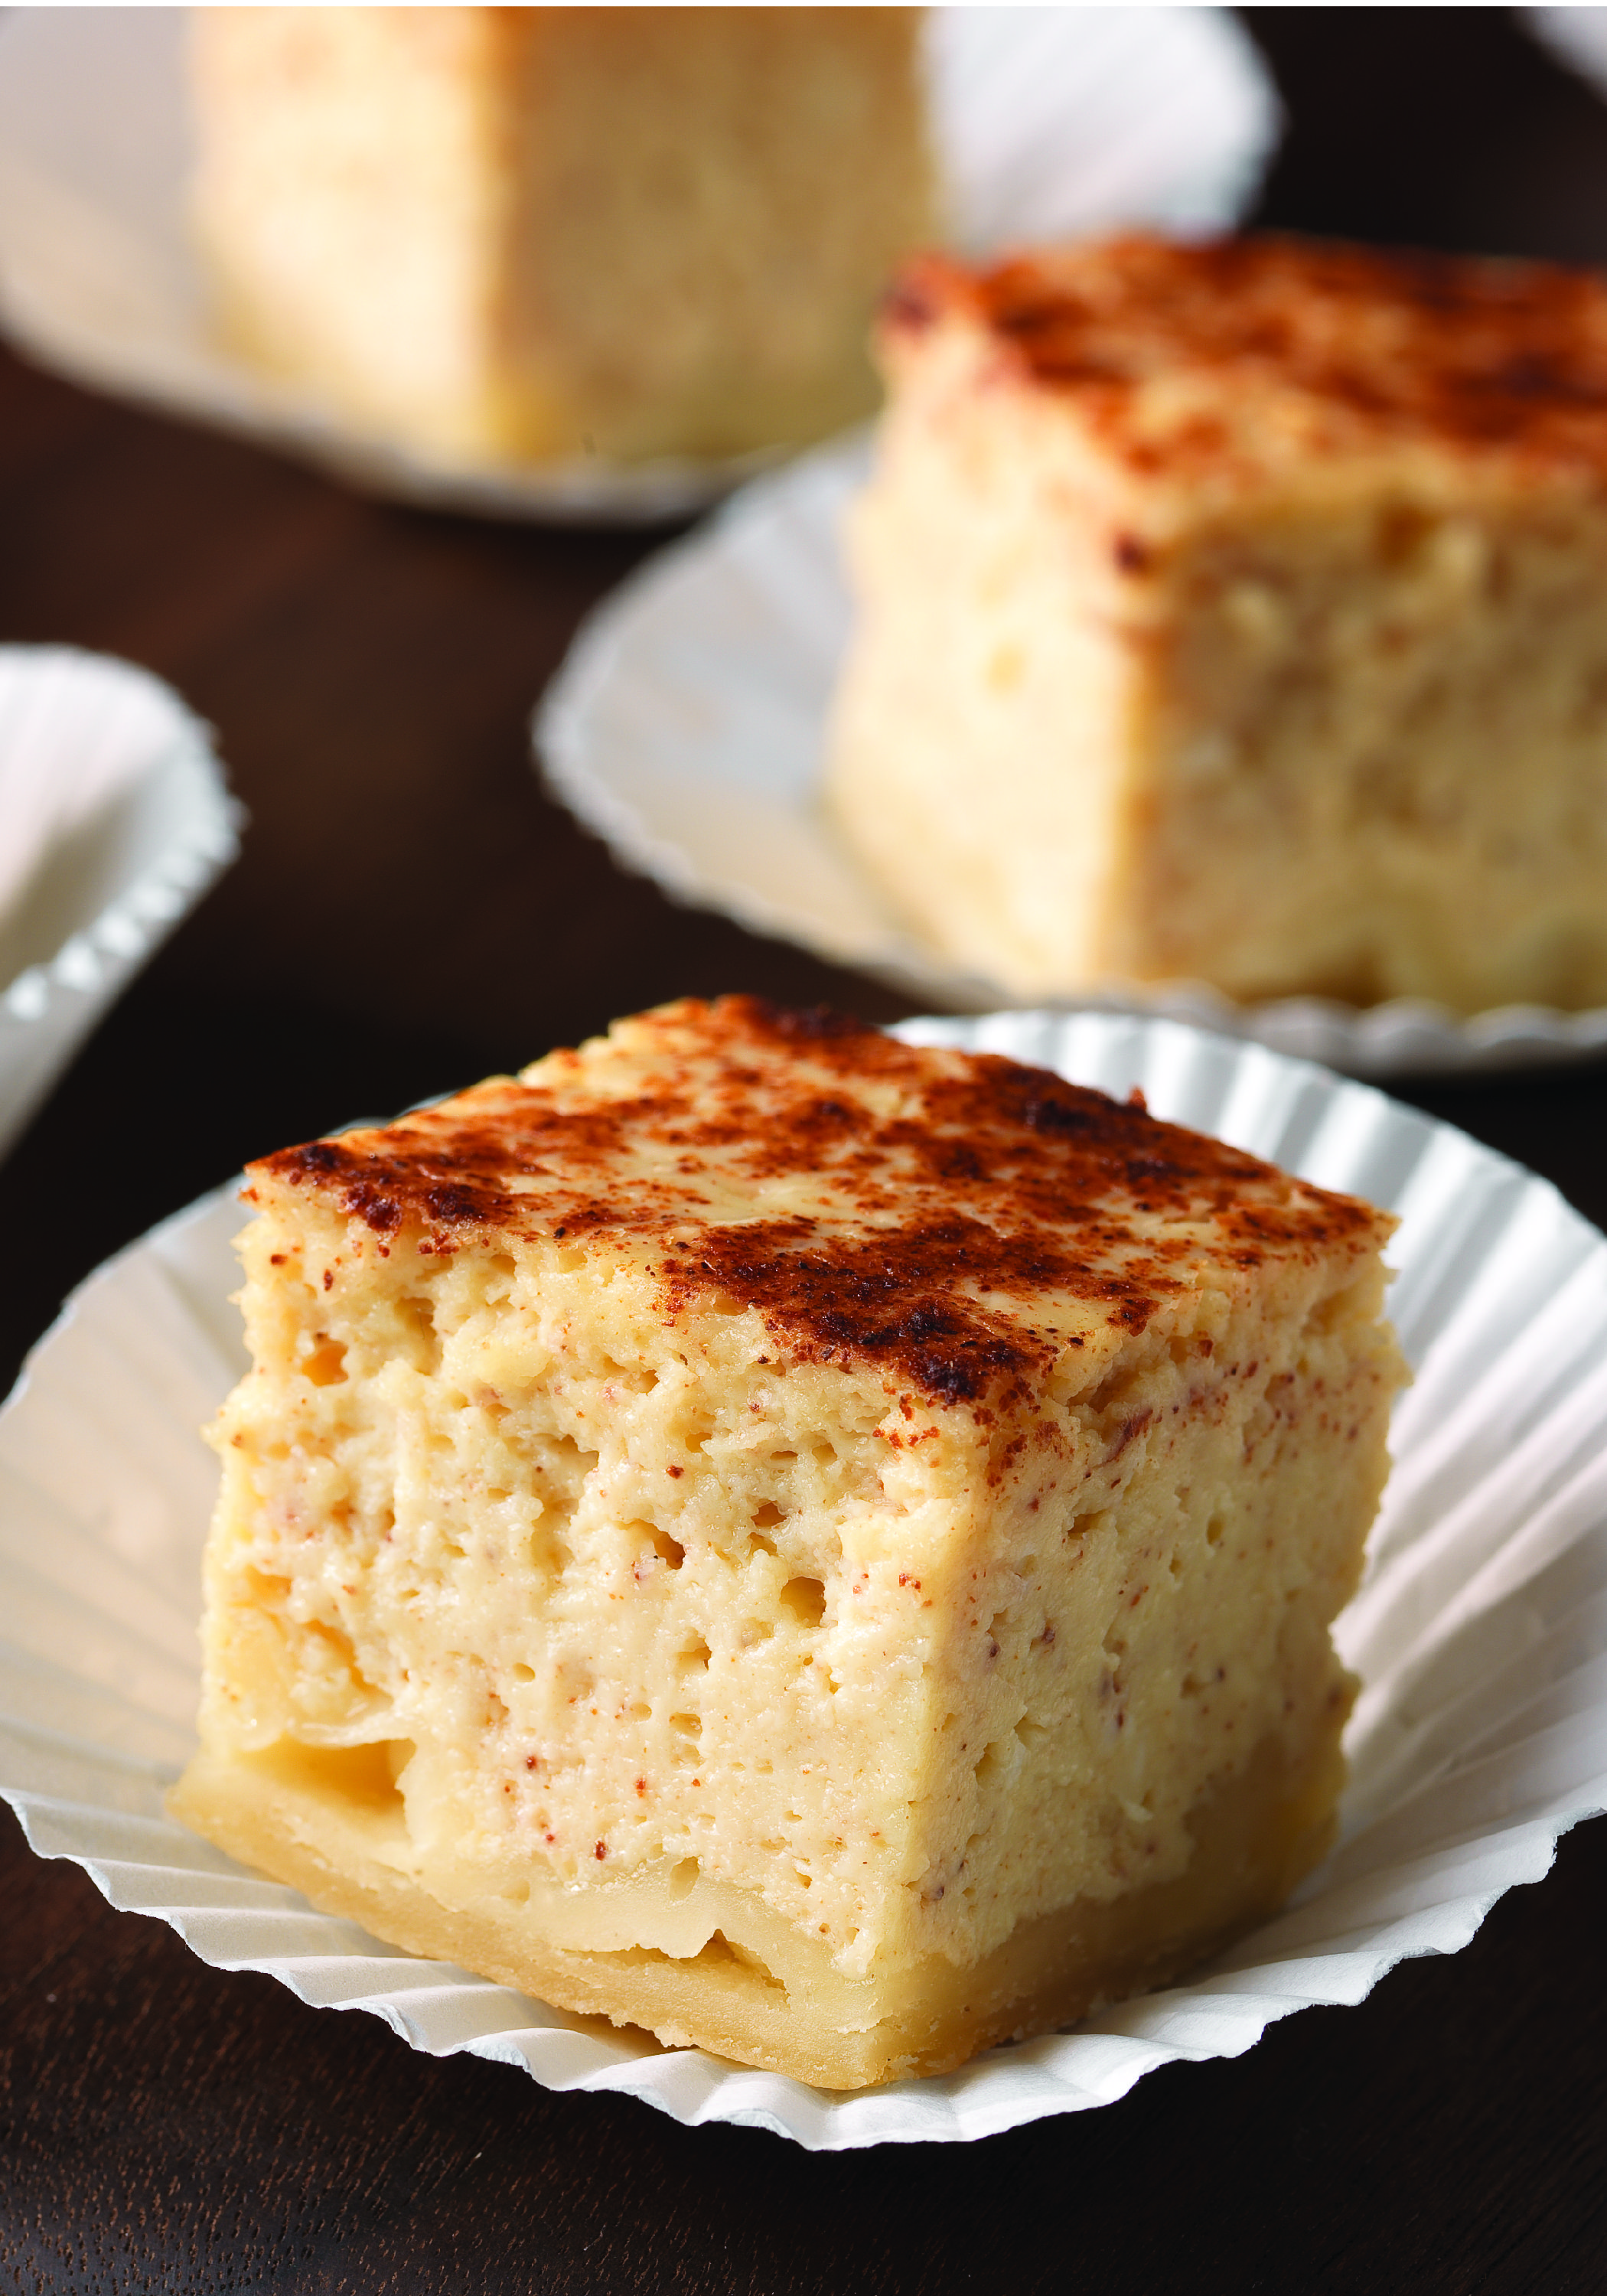 Greek cheesecake theres no feta in this mediterranean style greek cheesecake theres no feta in this mediterranean style cheesecake recipejust neufchatel cheese and classic greek ingredients like cinnamon honey forumfinder Gallery